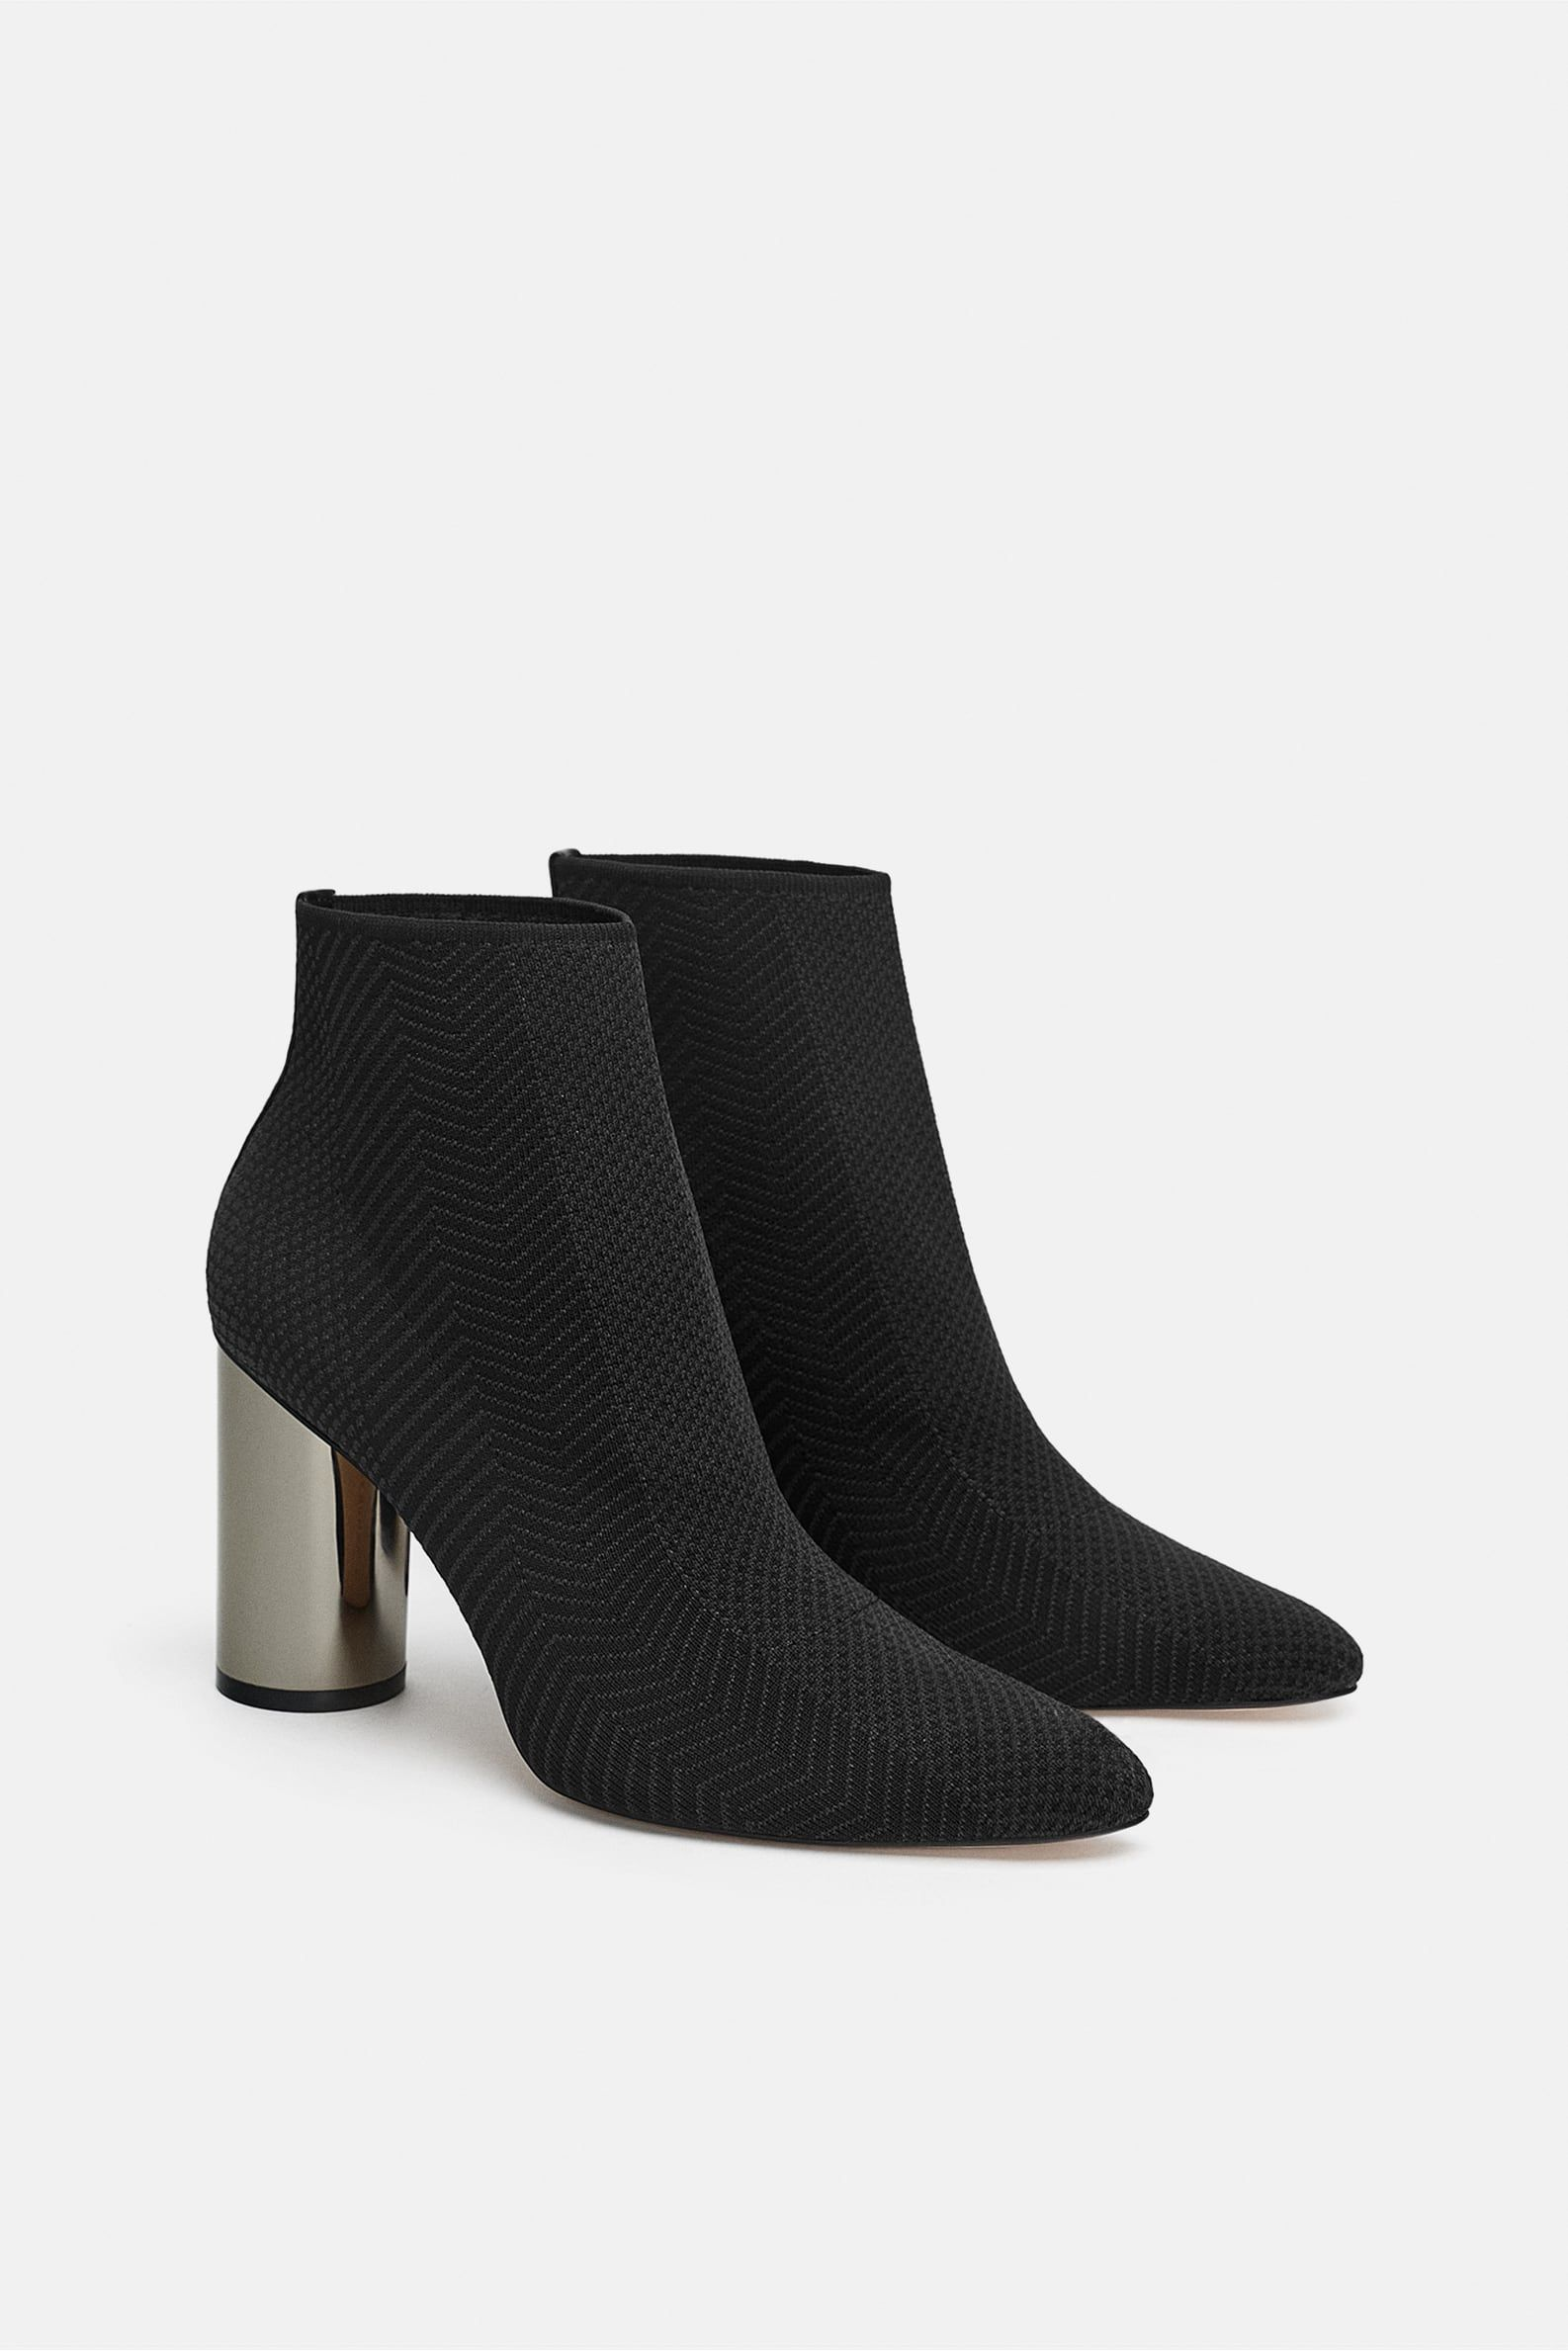 bf0ed74deaf41 Fabric ankle boot with metallic heel in 2019 | Materials | Zara ...